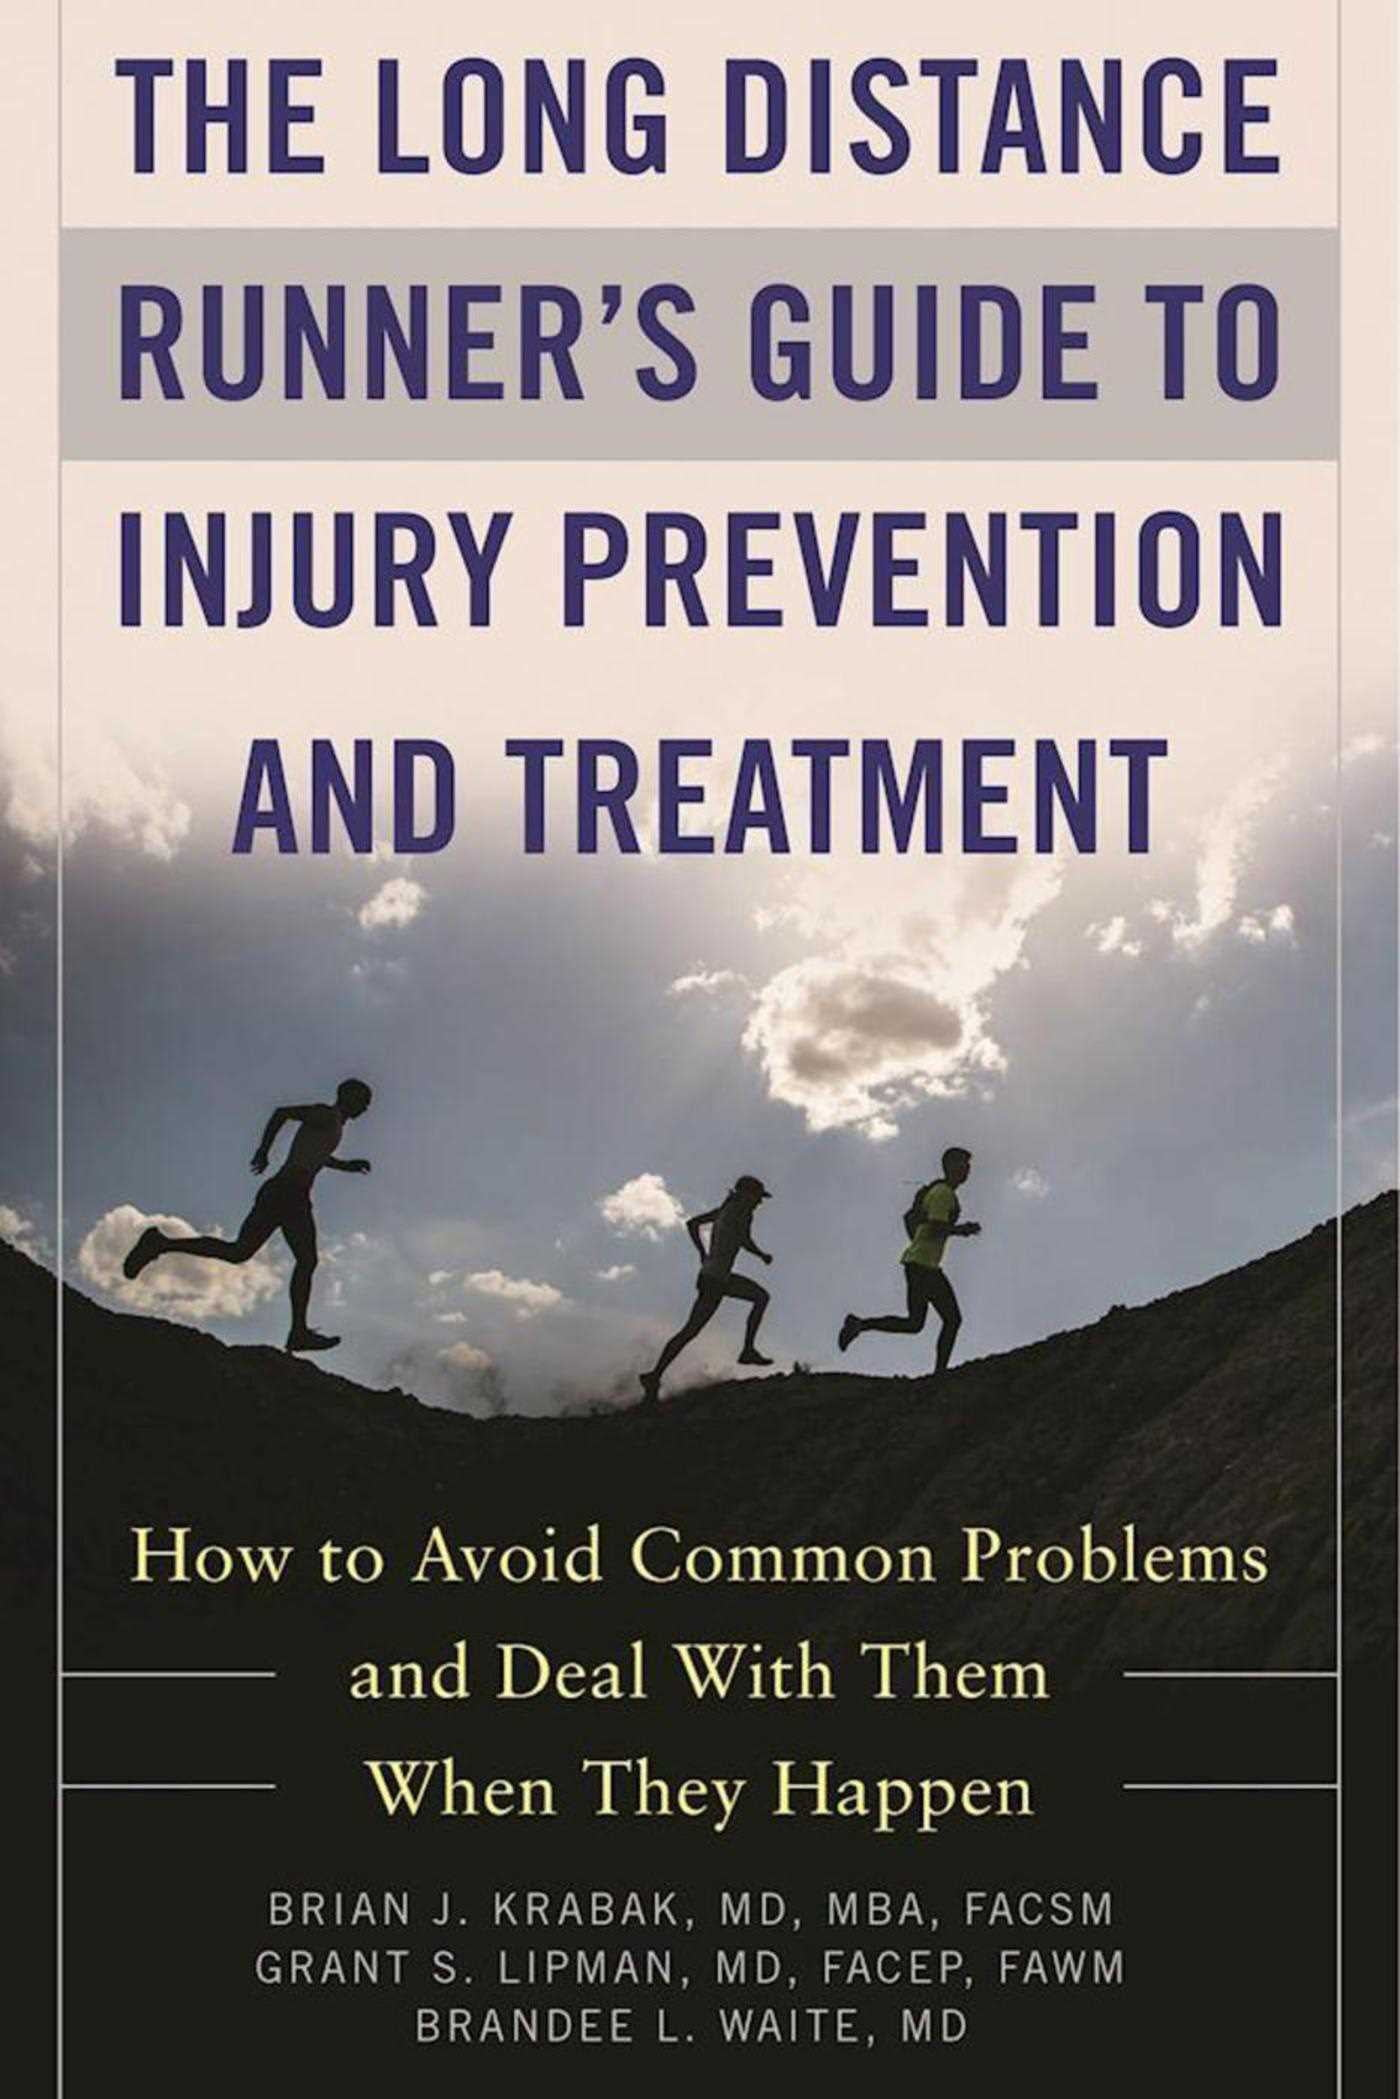 The Long Distance Runner's Guide to Injury Prevention and Treatment 978-1510717930 | EPUB